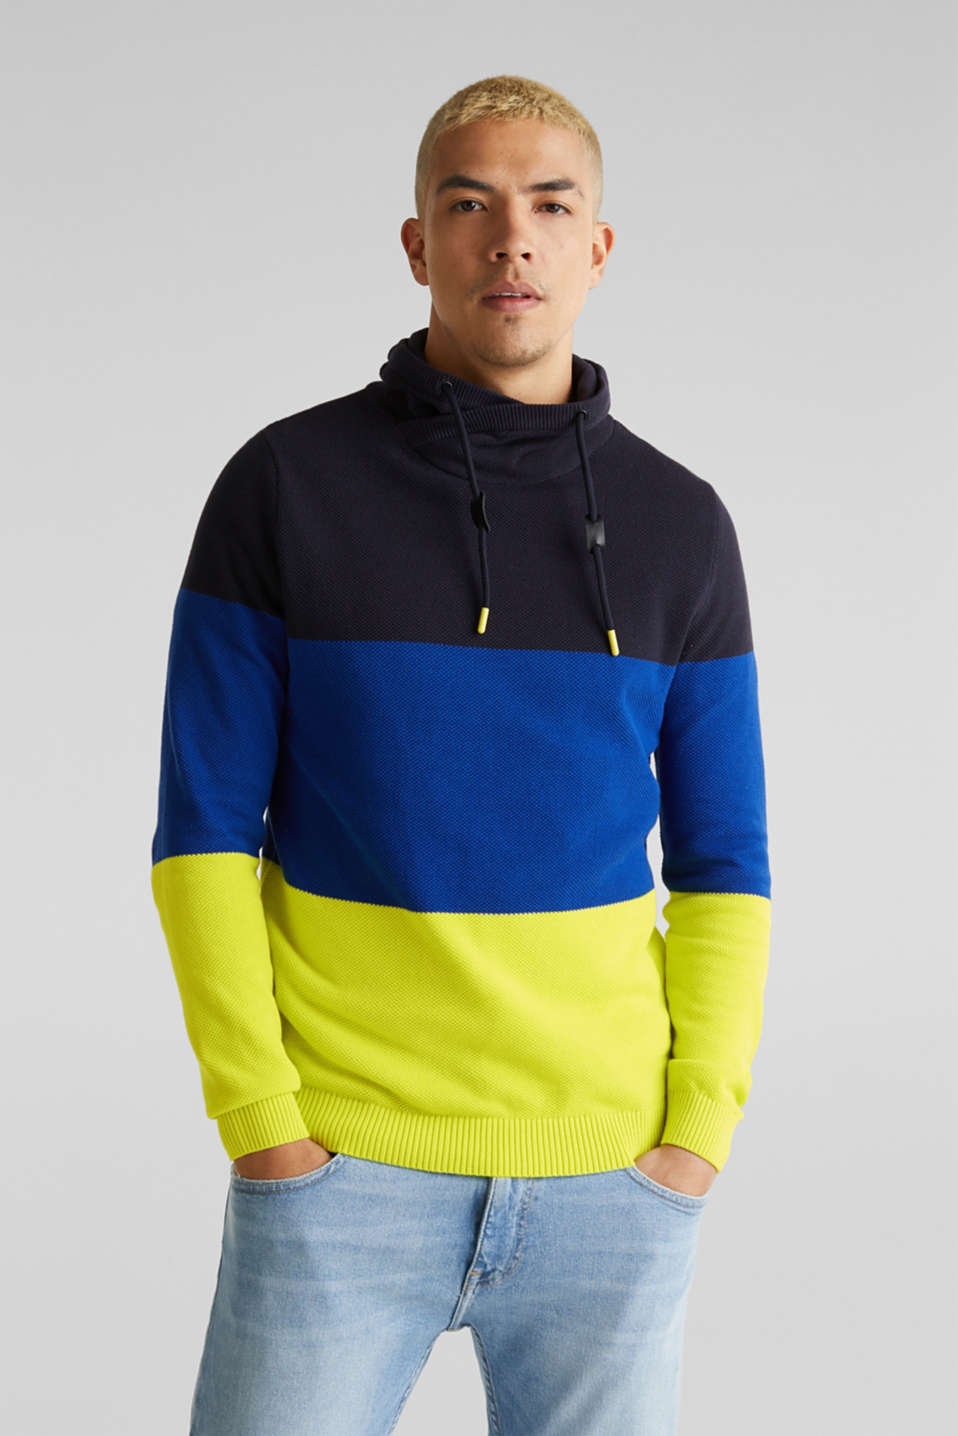 edc - NEON jumper with a drawstring collar, 100% cotton